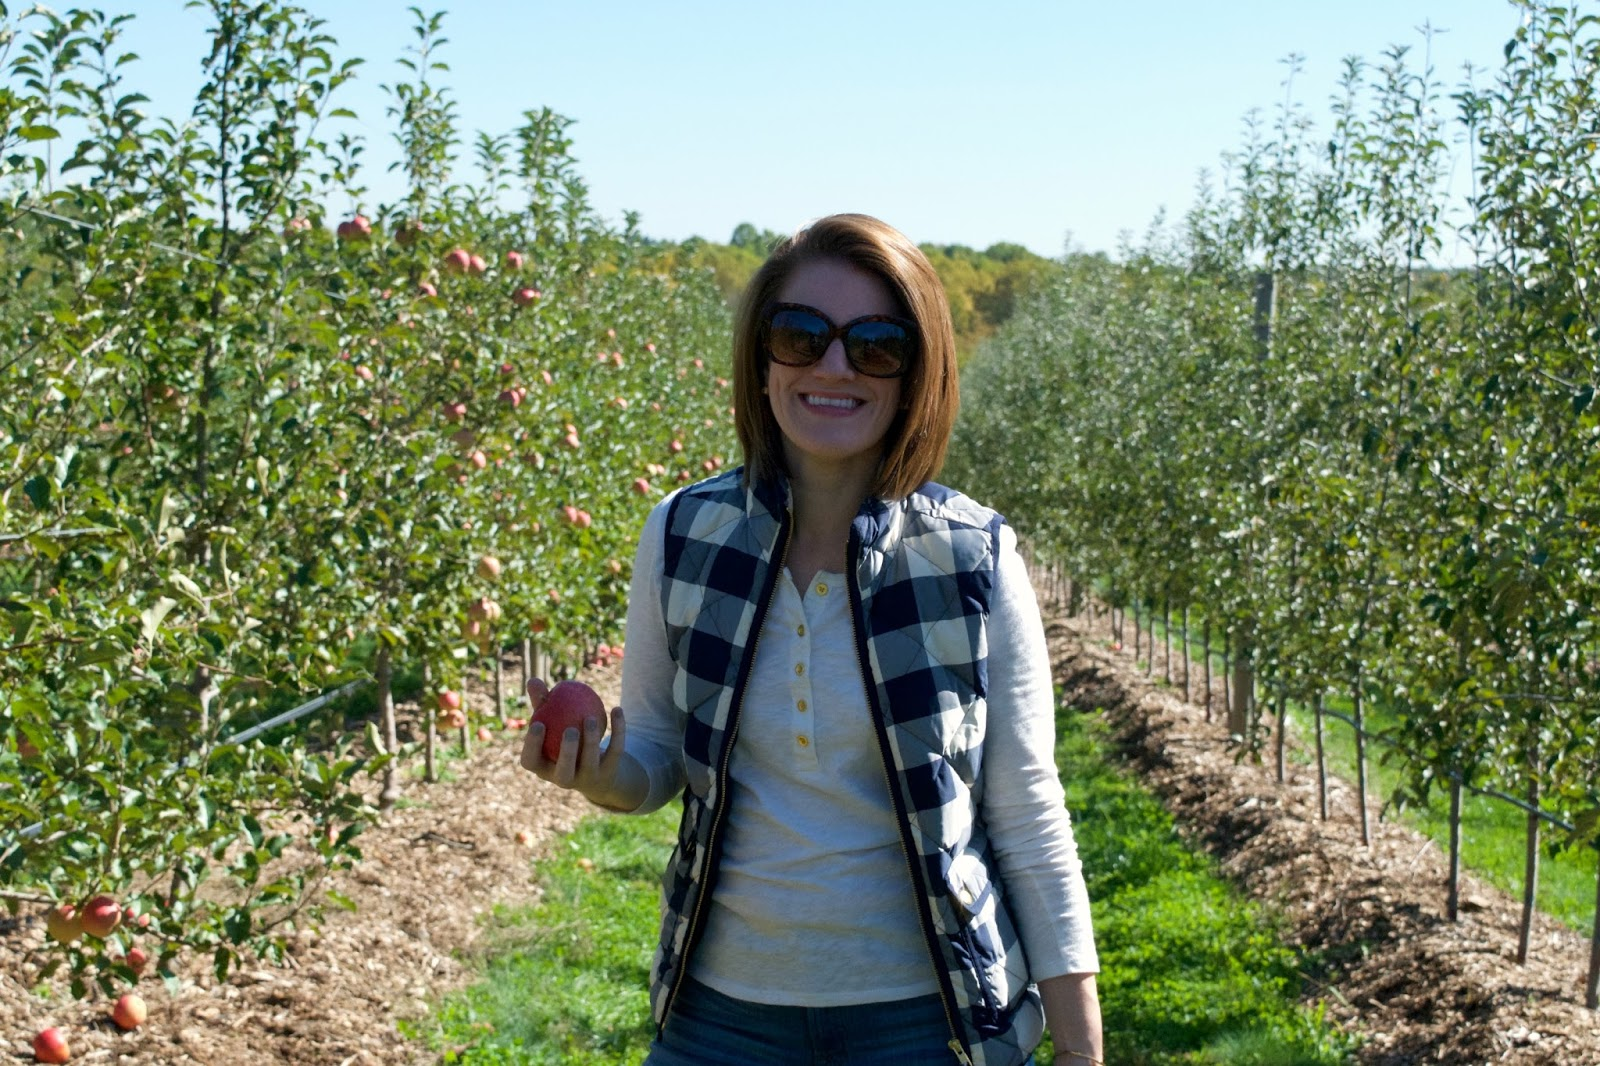 fall blogger outfit - apple picking outfit - what to wear apple picking - j.crew vest - quilted vest